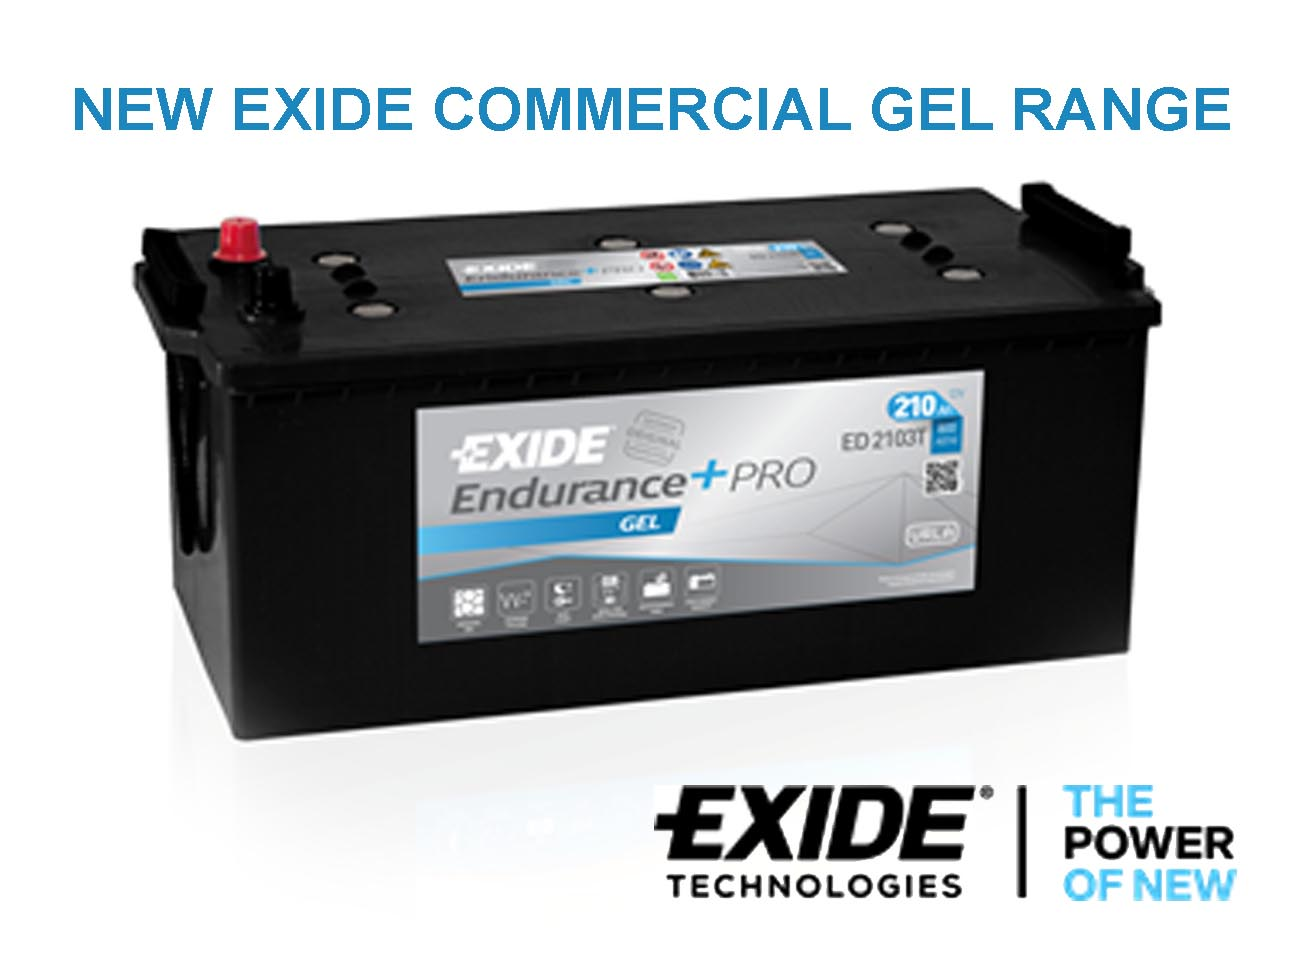 NEW GEL TYPE ADDED TO EXIDE COMMERCIAL VEHICLE RANGE